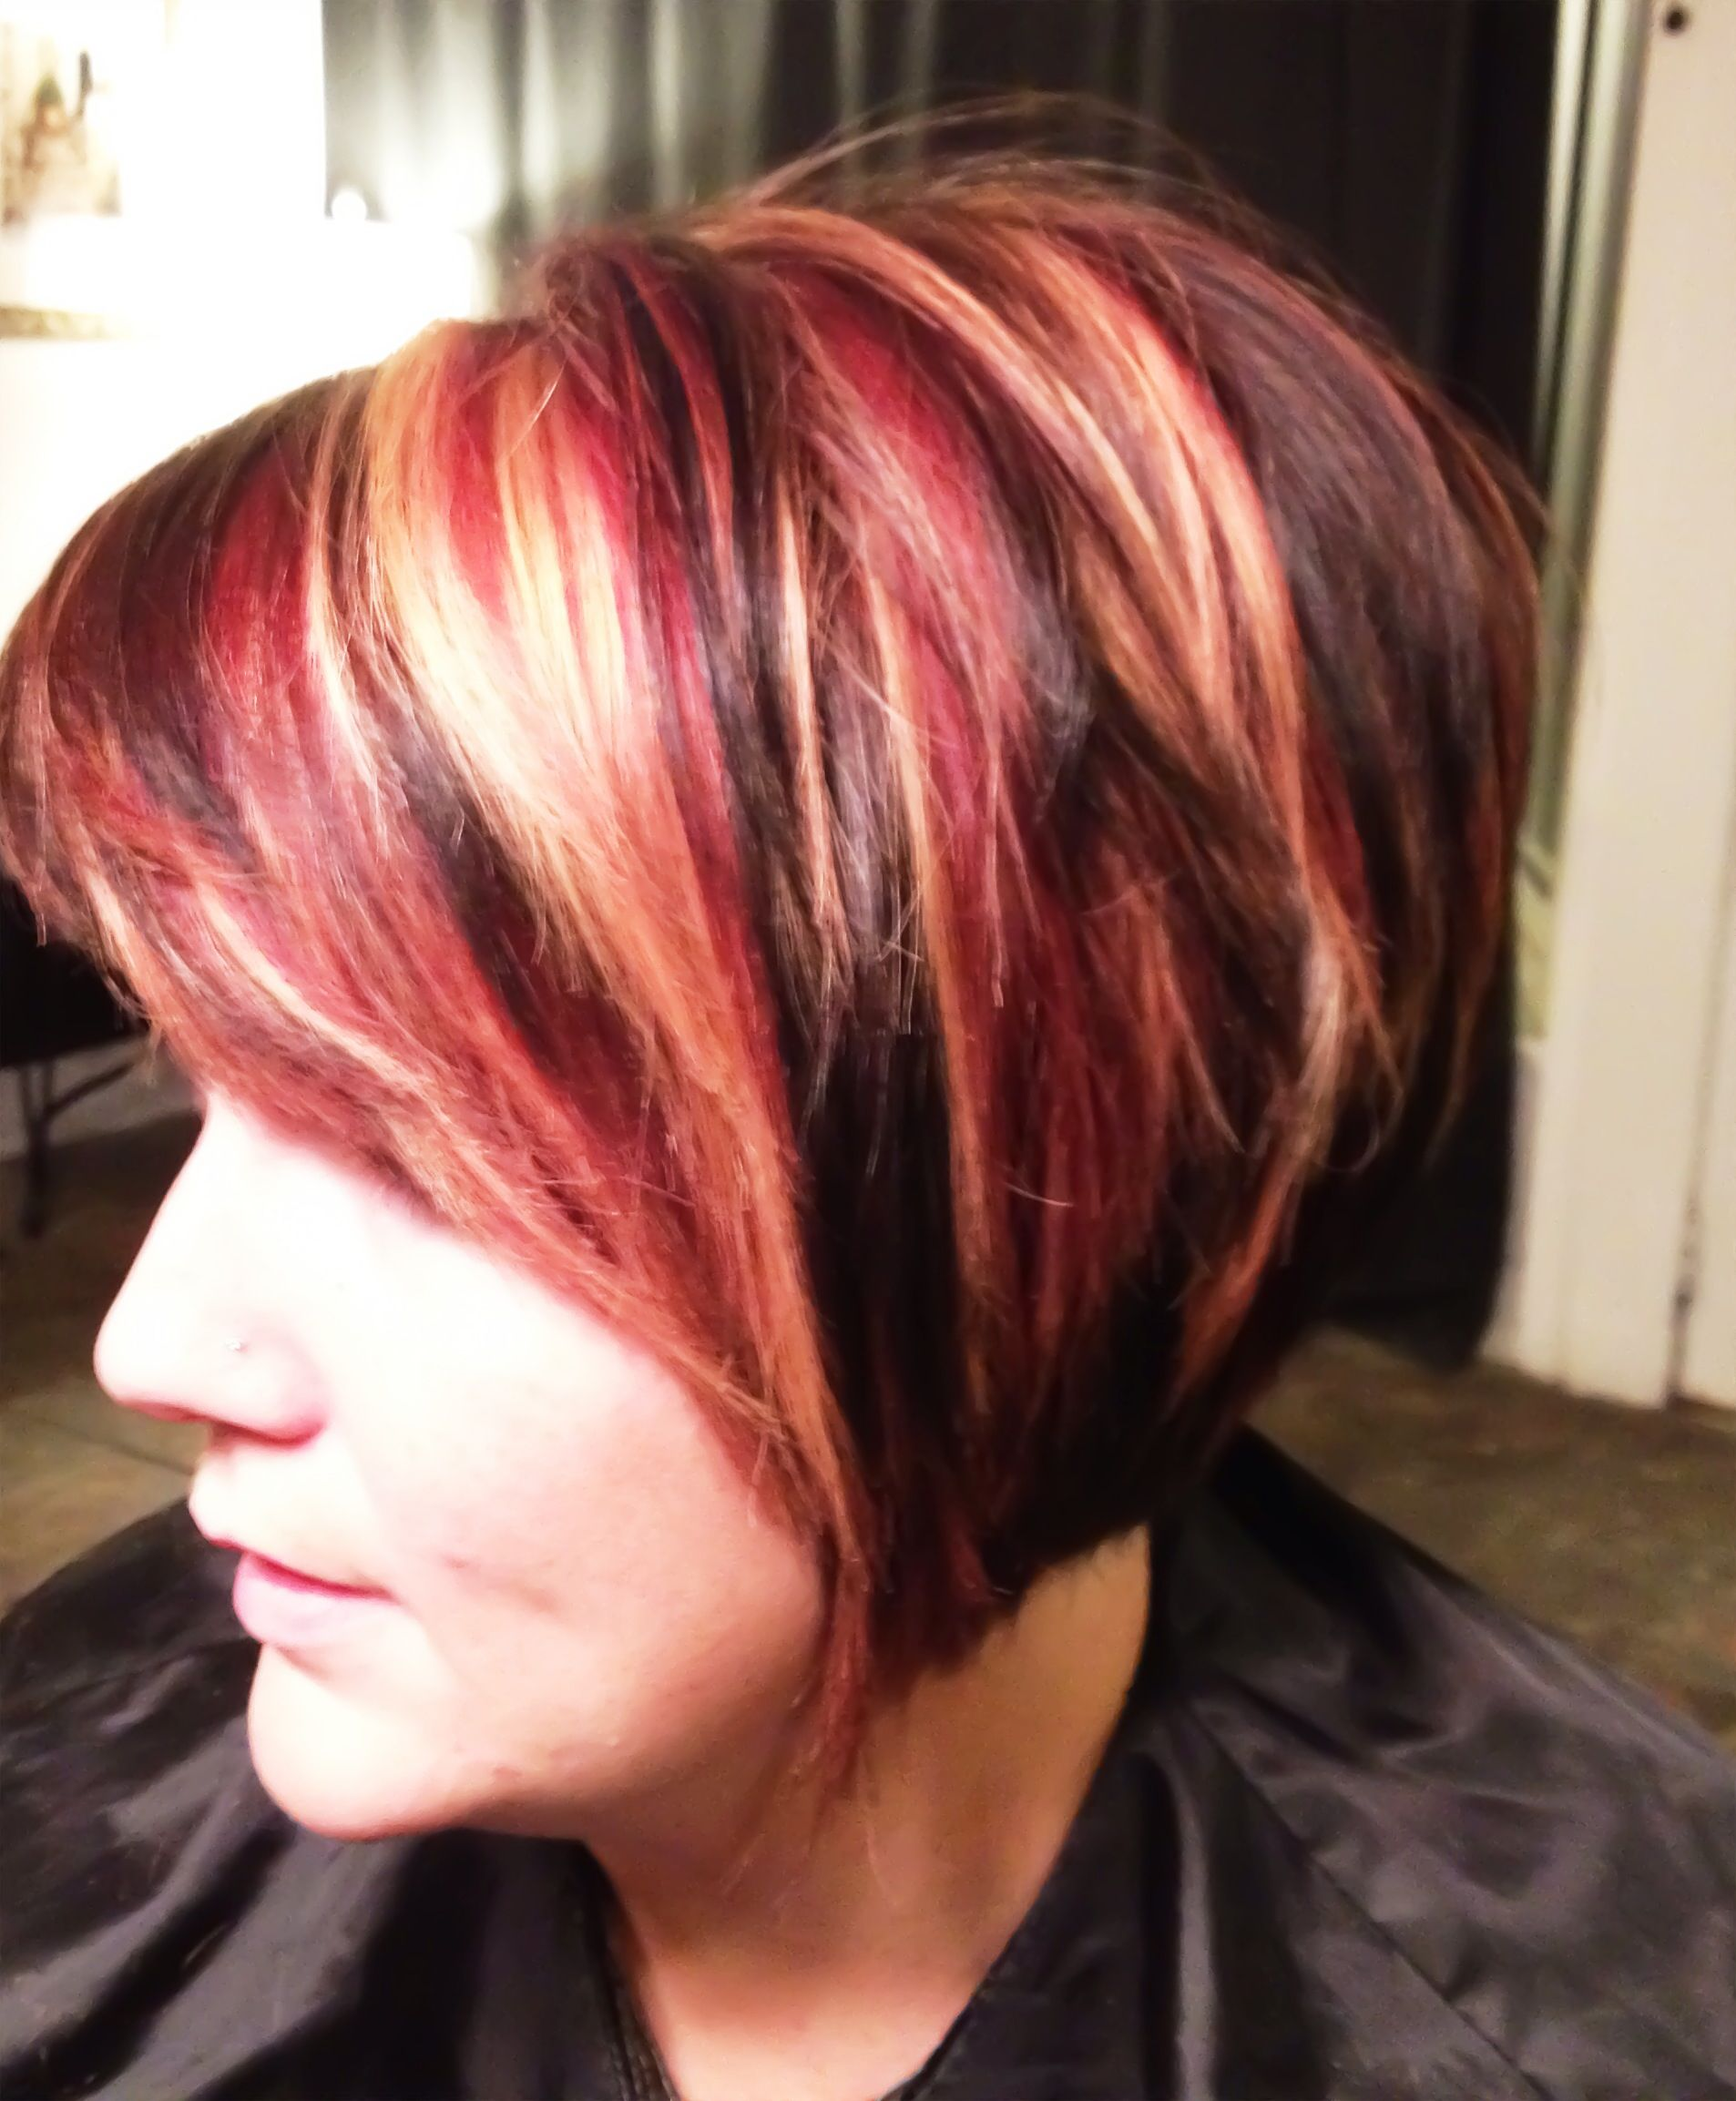 Fall hair color. Red, blonde, and dark brown. | Hair | Pinterest ...